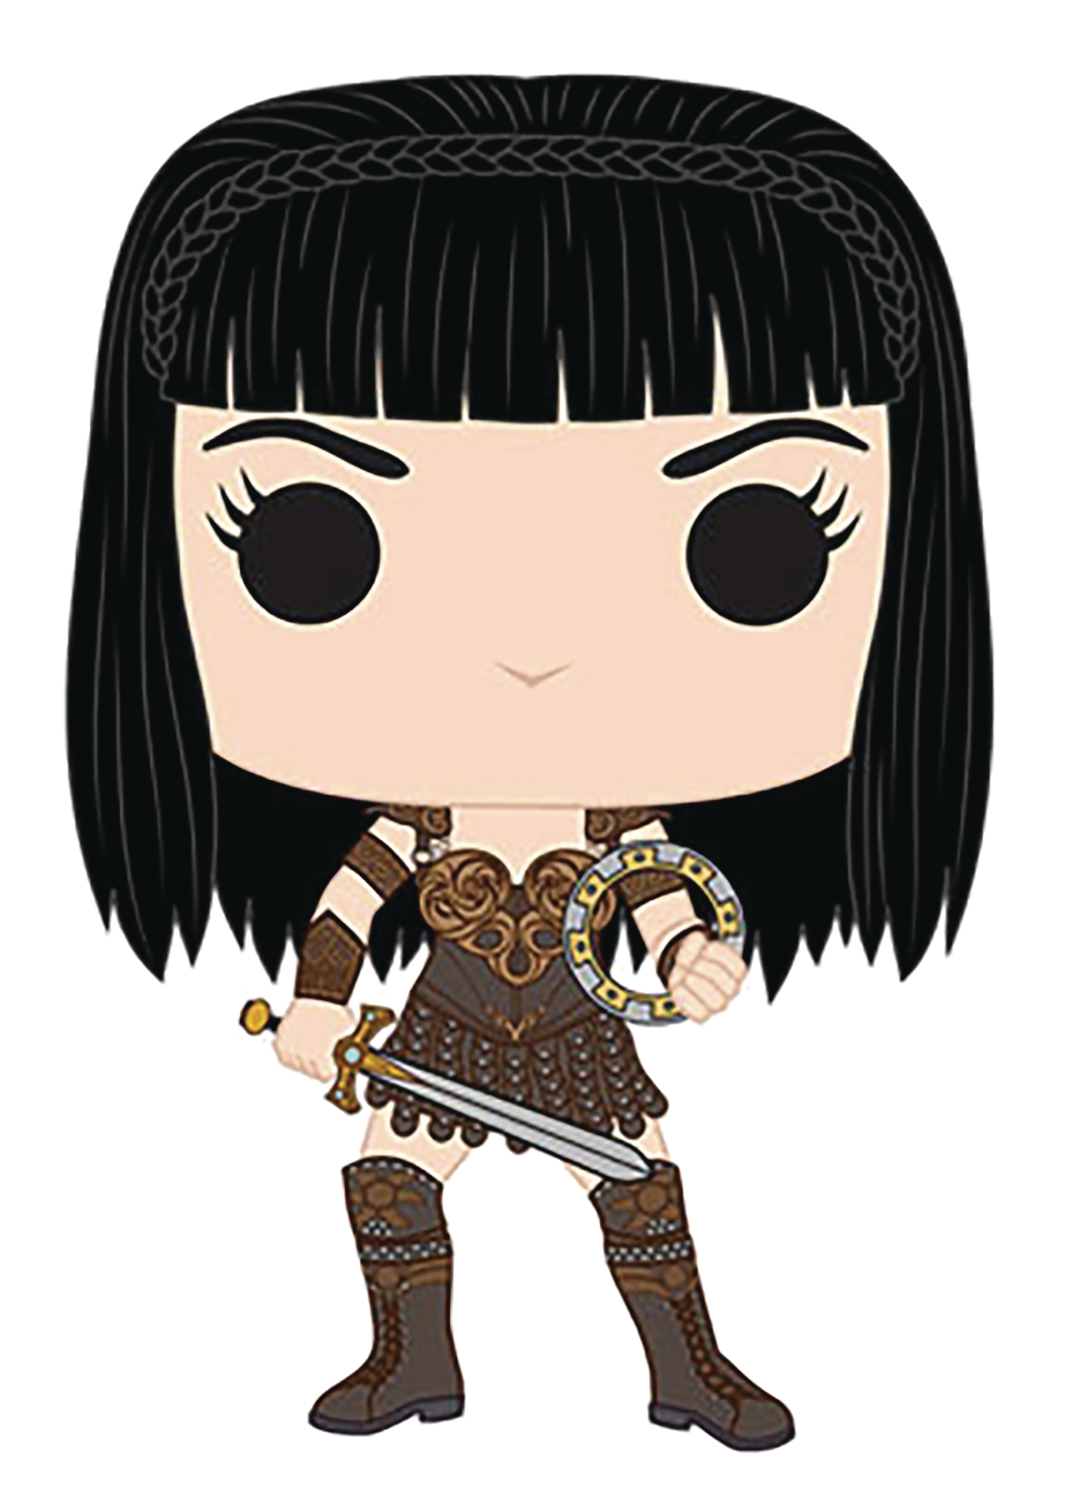 POP TV XENA WARRIOR PRINCESS VINYL FIG